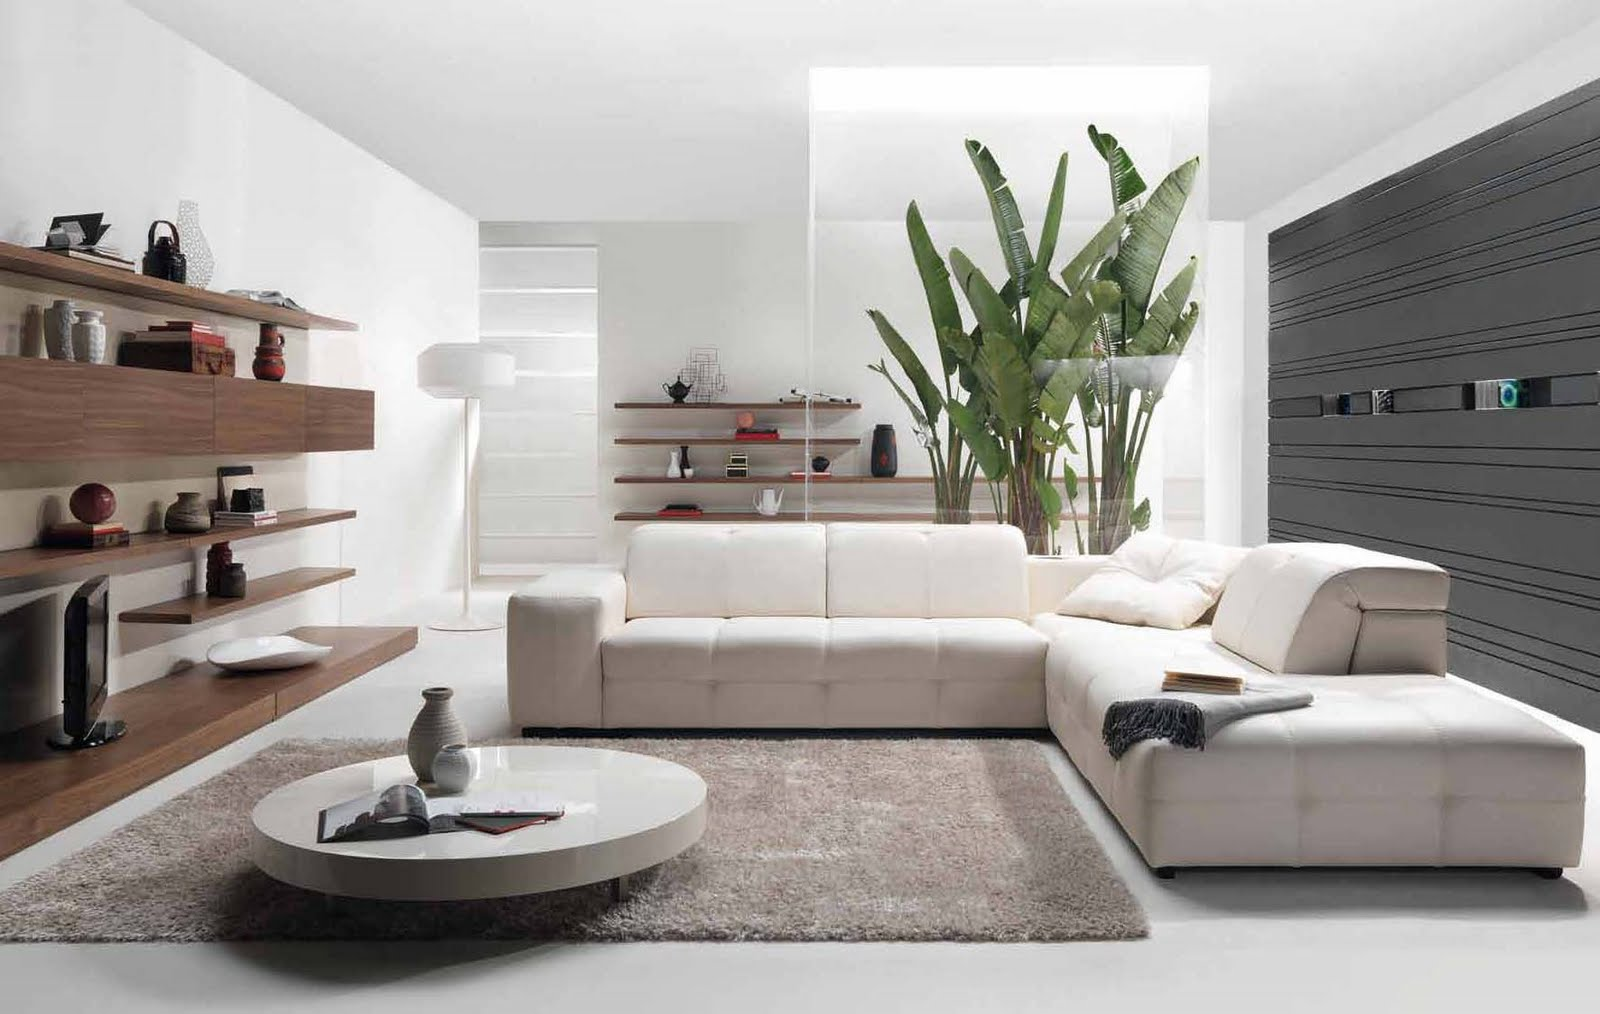 Future House Design: Modern Living Room Interior Design Styles 2010 by ...